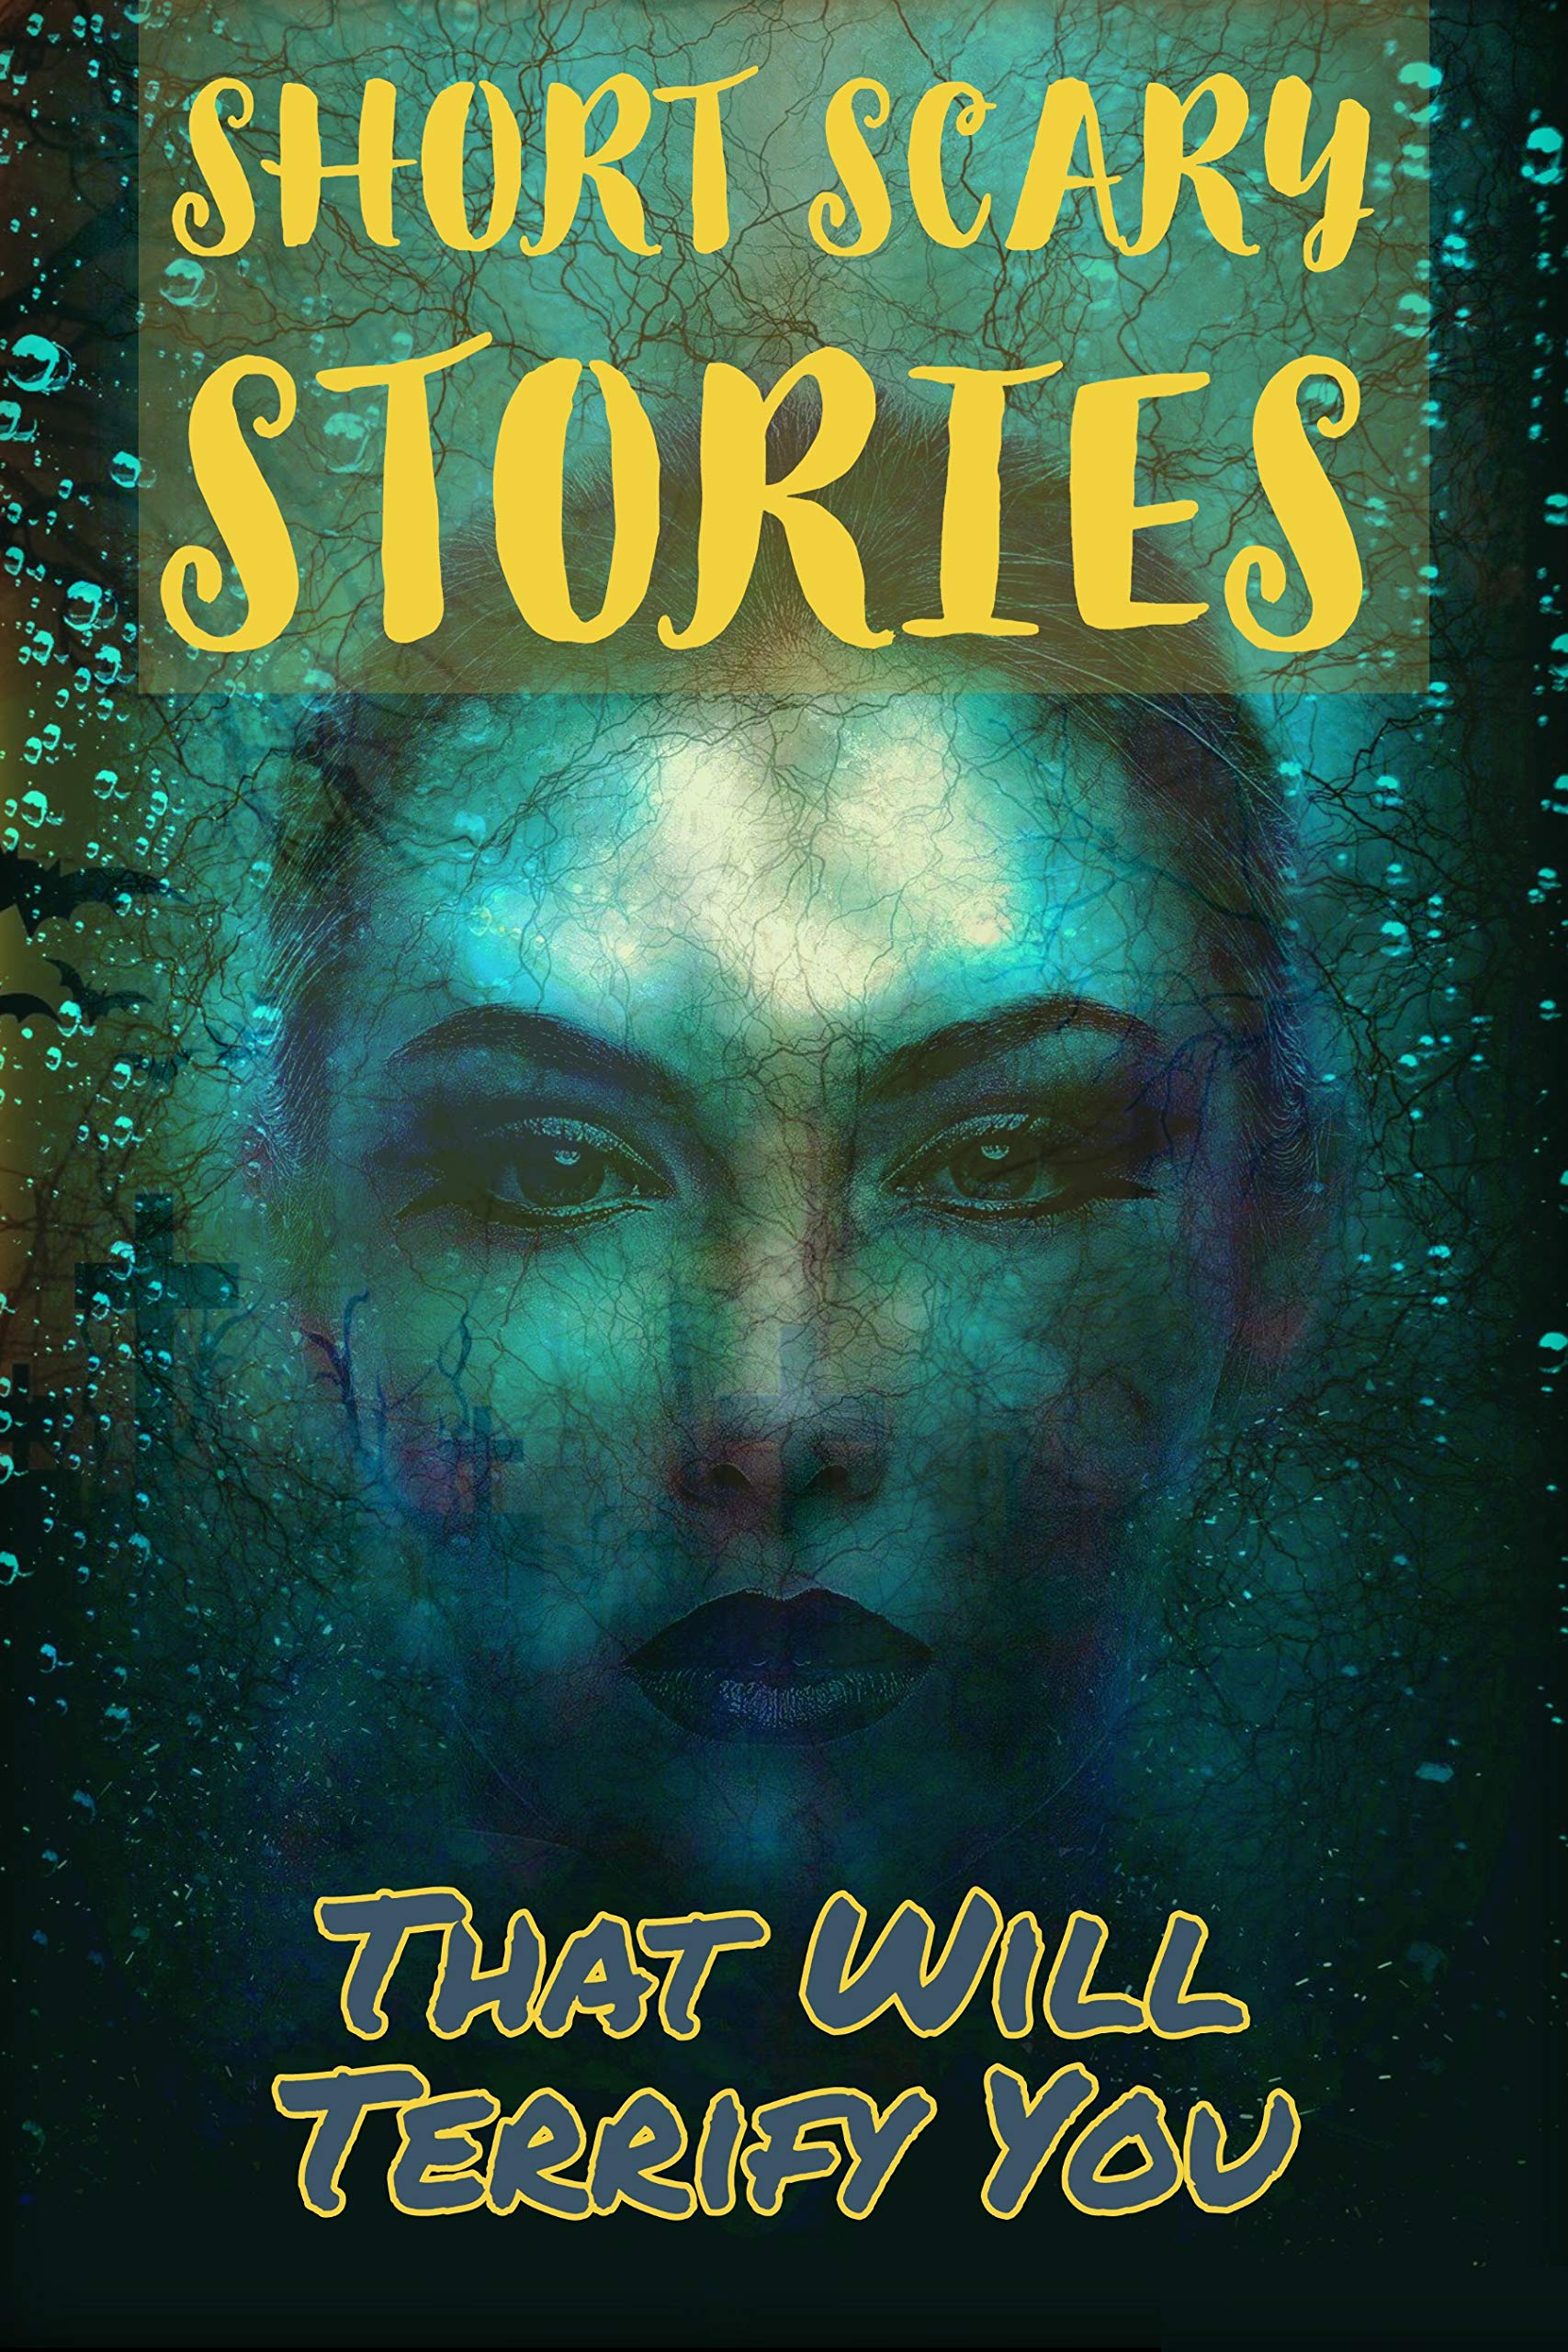 SHORT HORROR STORIES BUT THEY WILL DEFINITELY SCARE YOU: best horror short stories collection, Gore, Terror, Monsters, Ghosts, Paranormal and more.